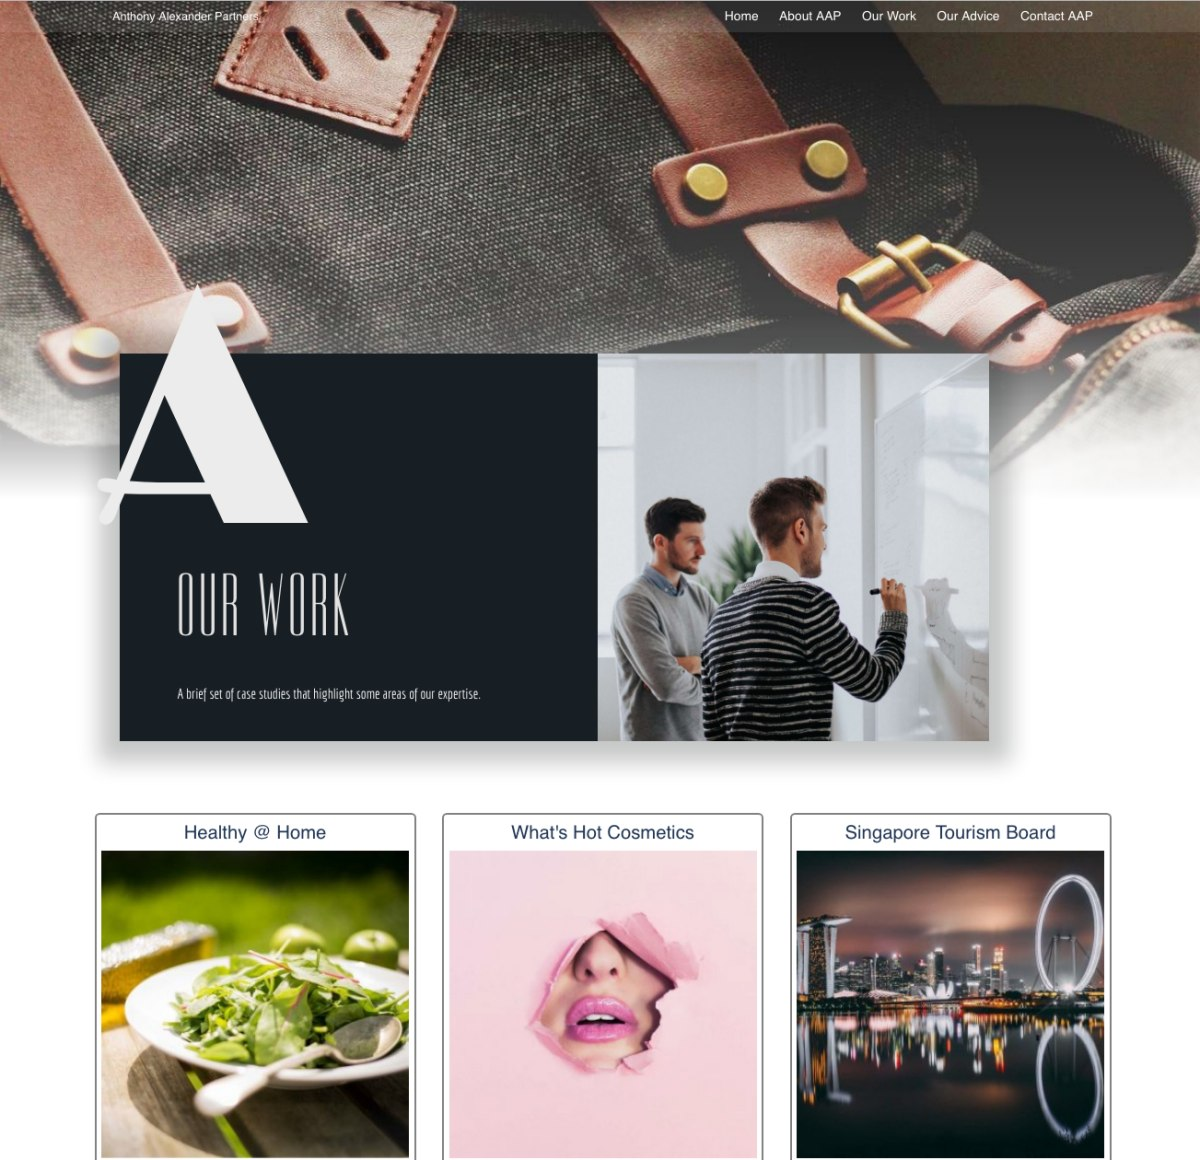 Small Business Website Designed buy: Cotts, Inc. Pottsville PA  17901